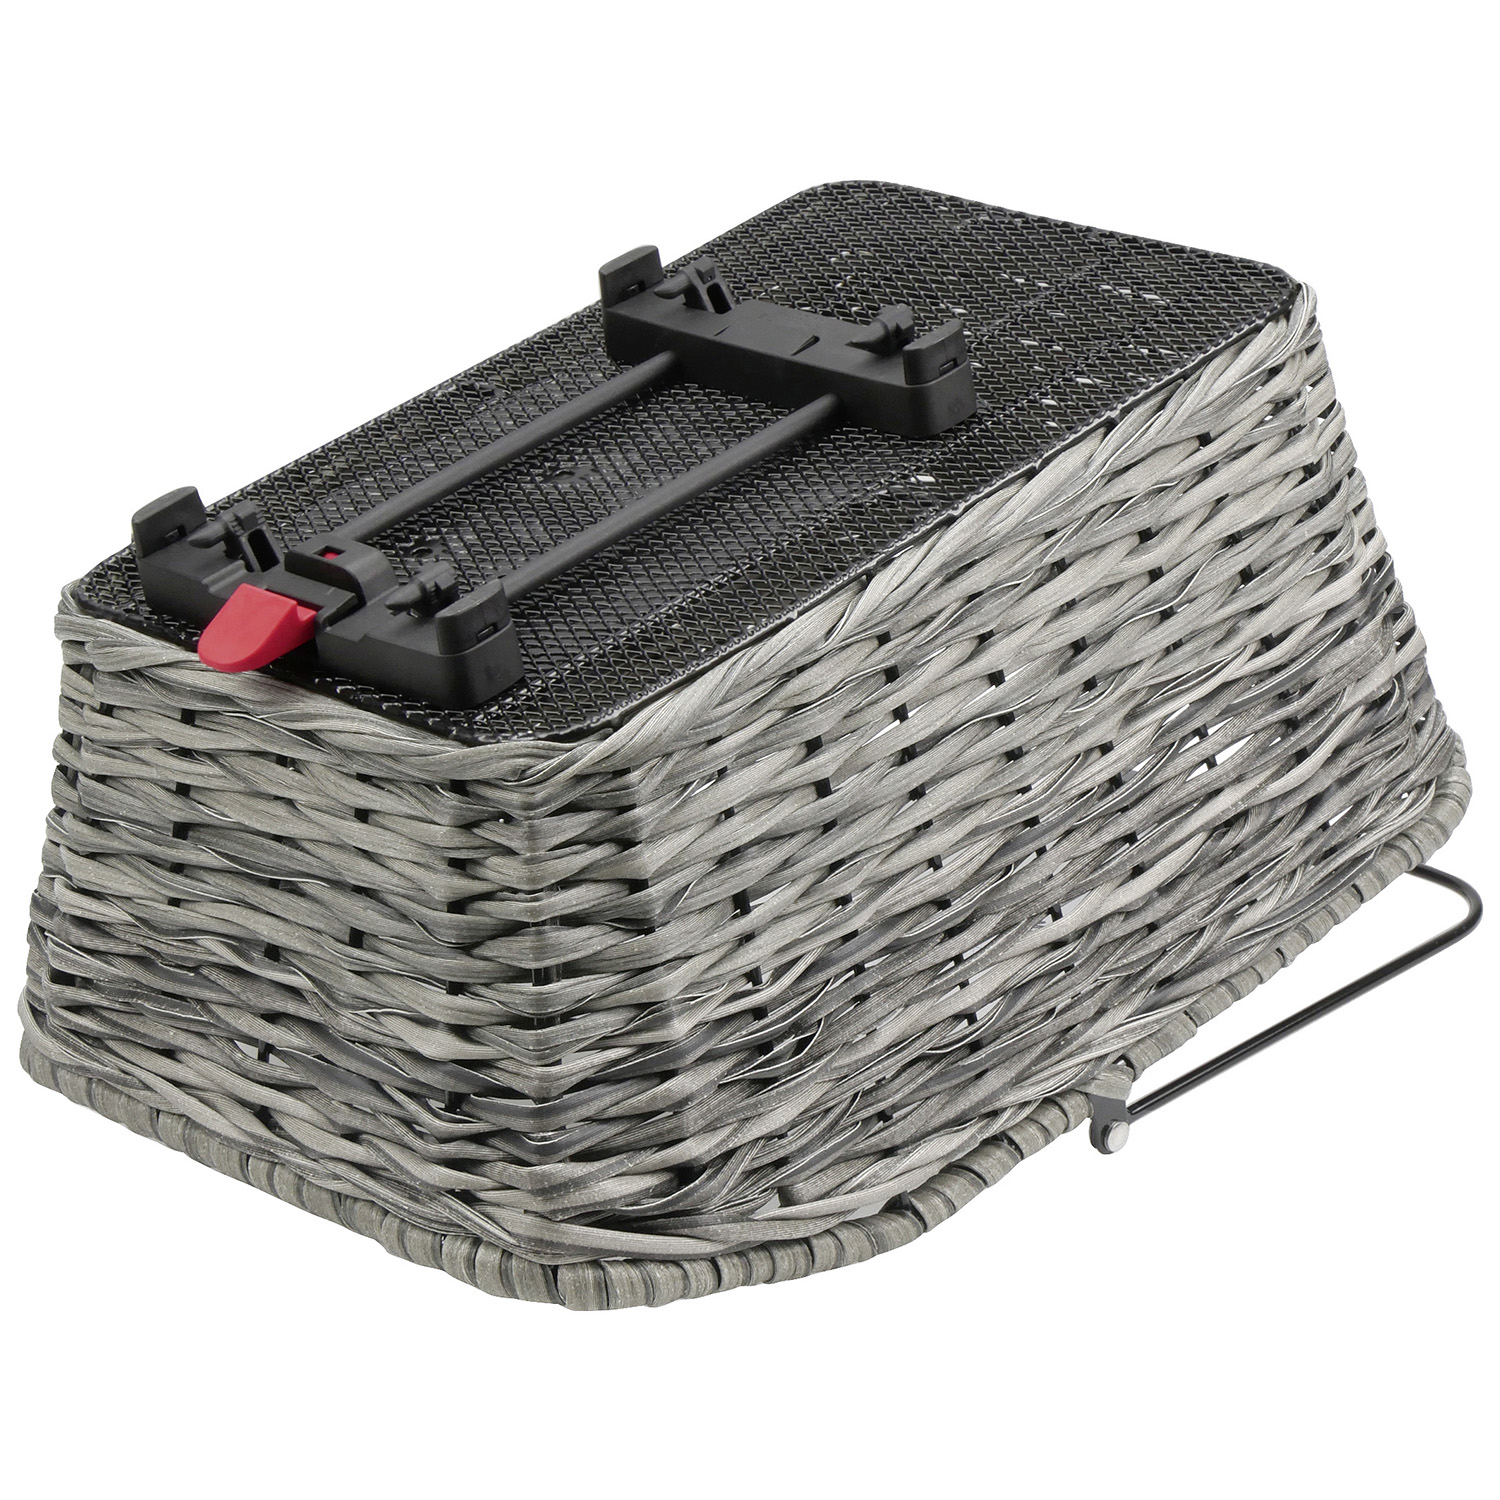 Structura GT, plaited carrier basket – only for Racktime racks